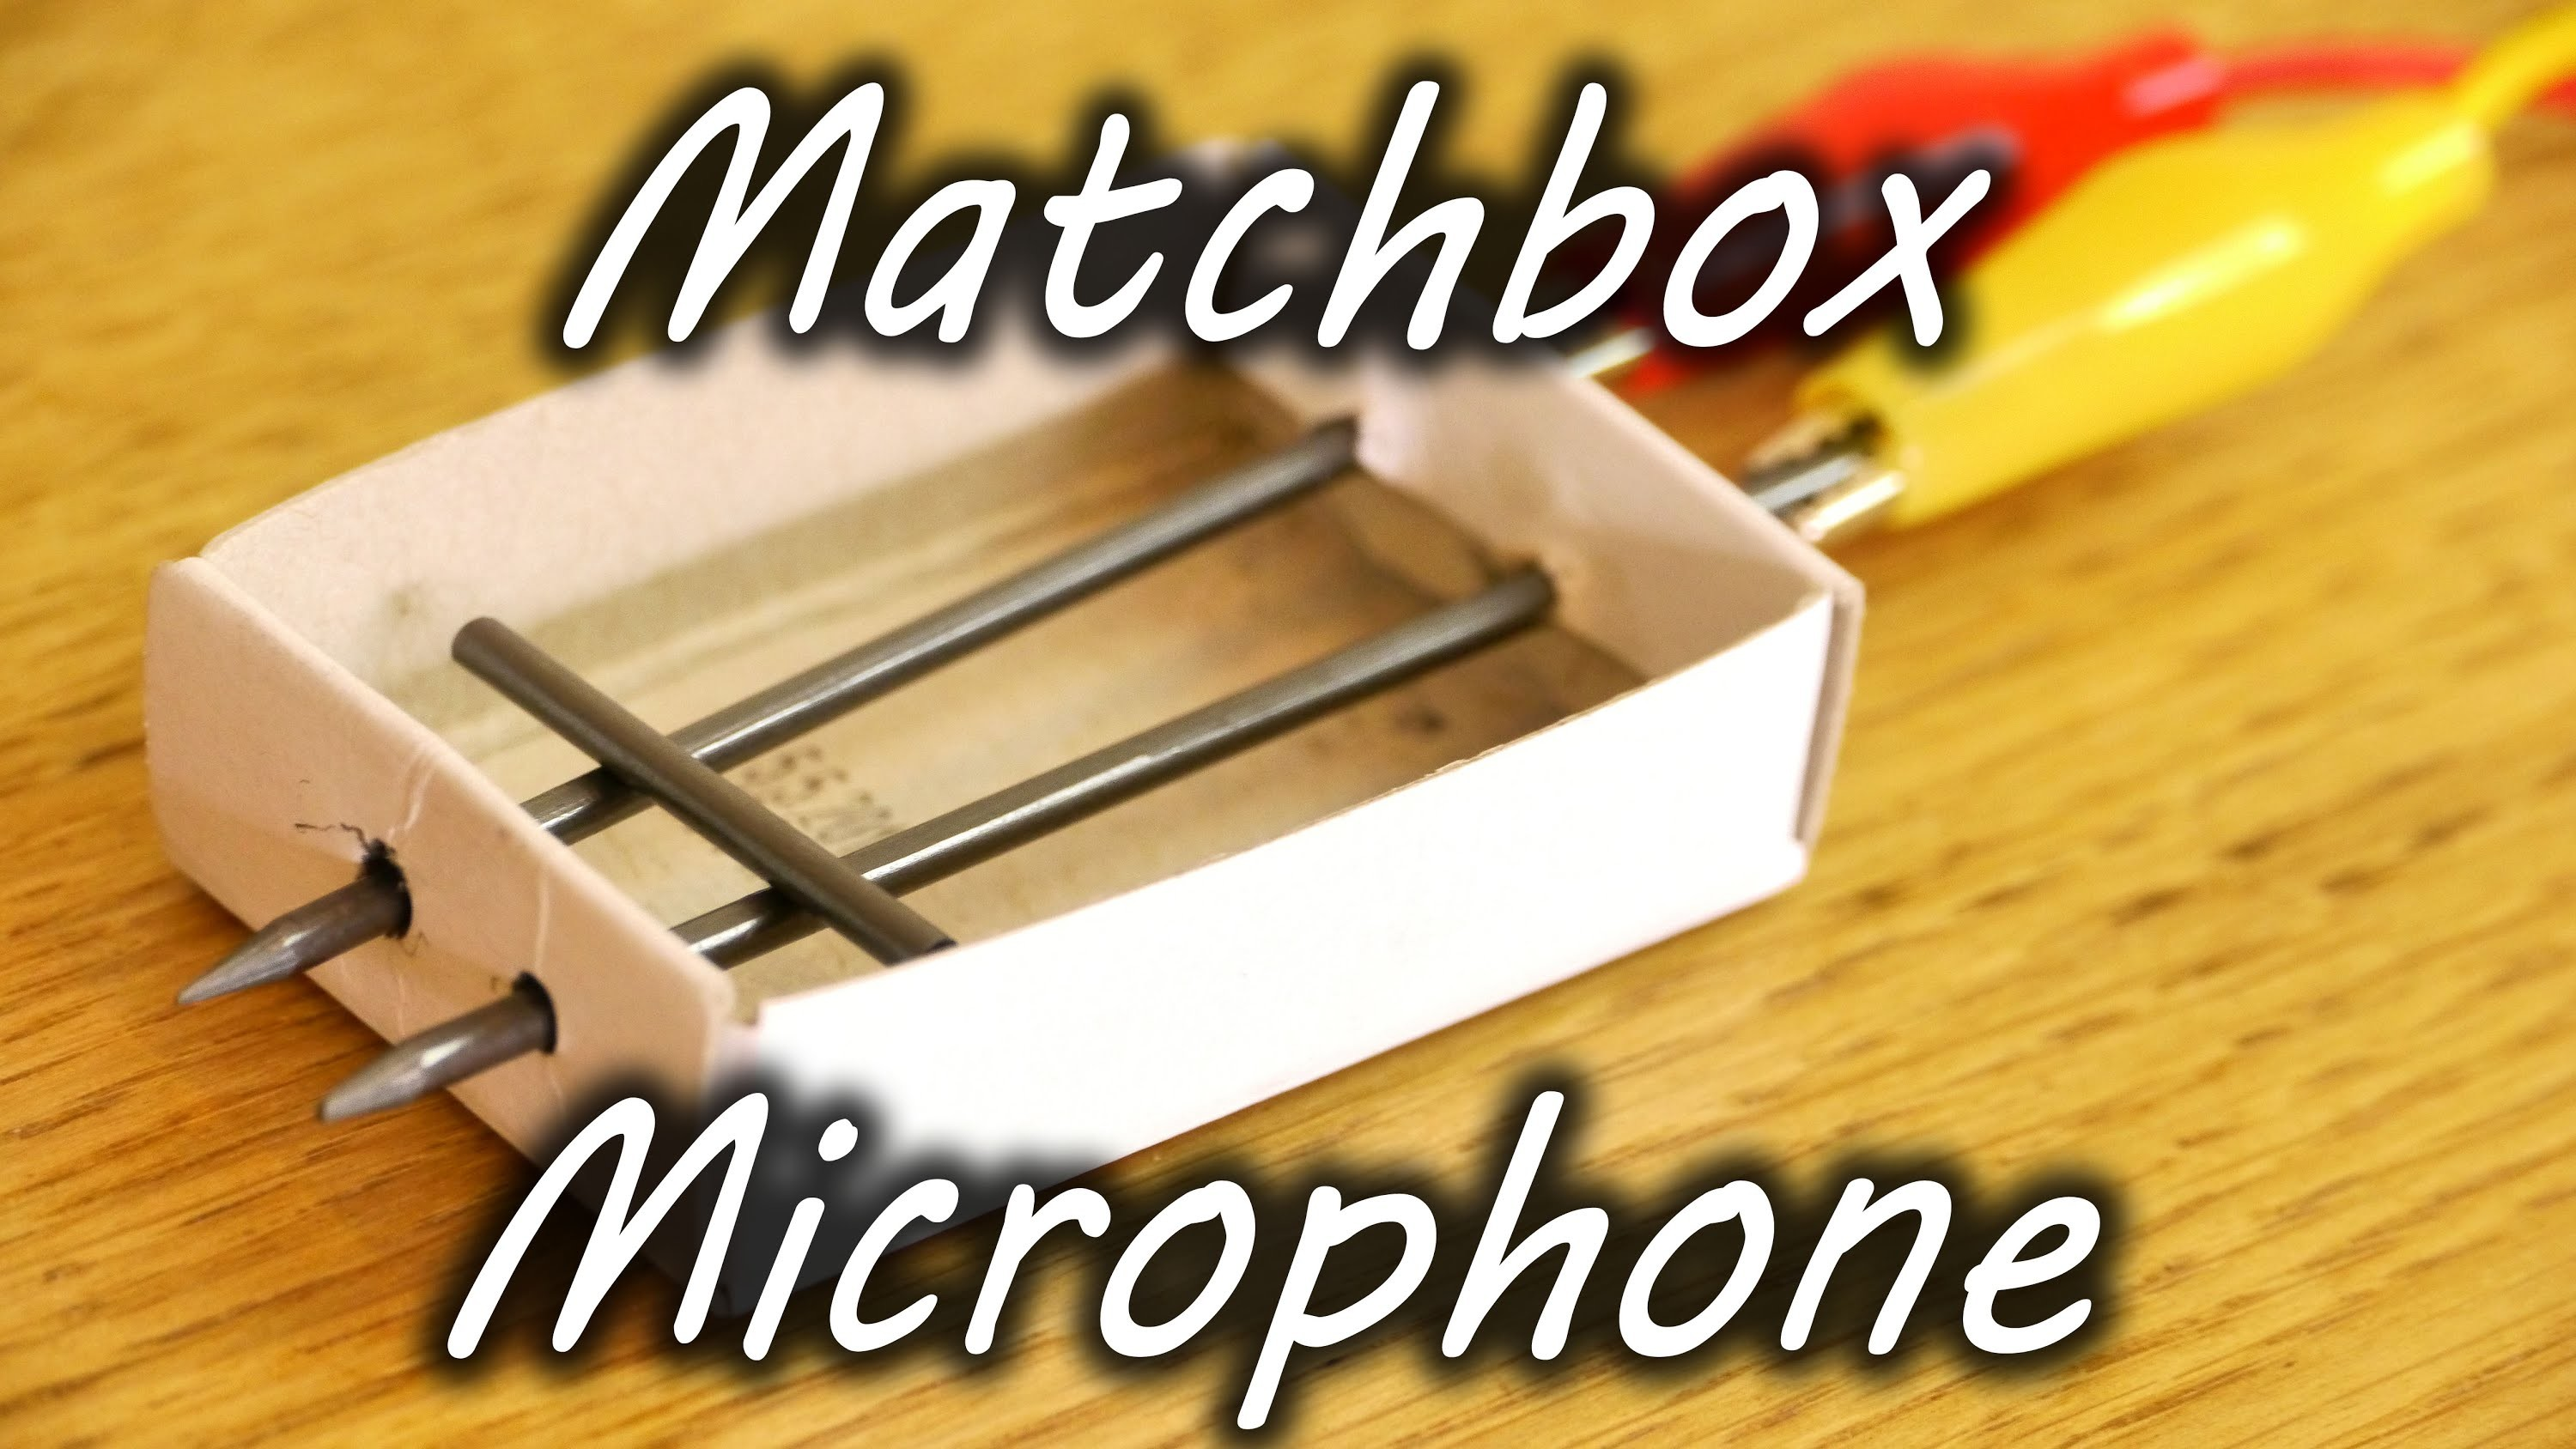 How to Make a Matchbox Microphone